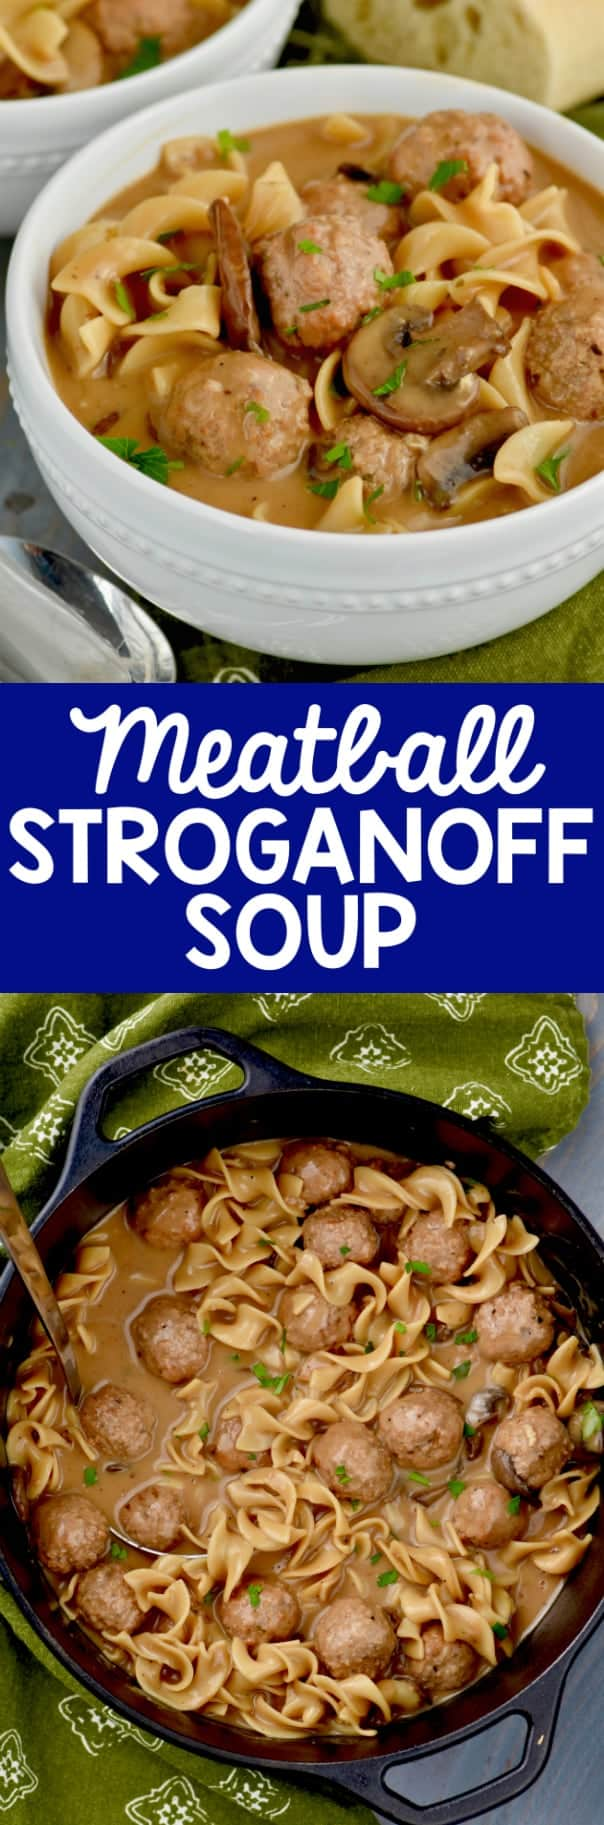 The Meatball Beef Stroganoff are in a white bowl with a slice of bread